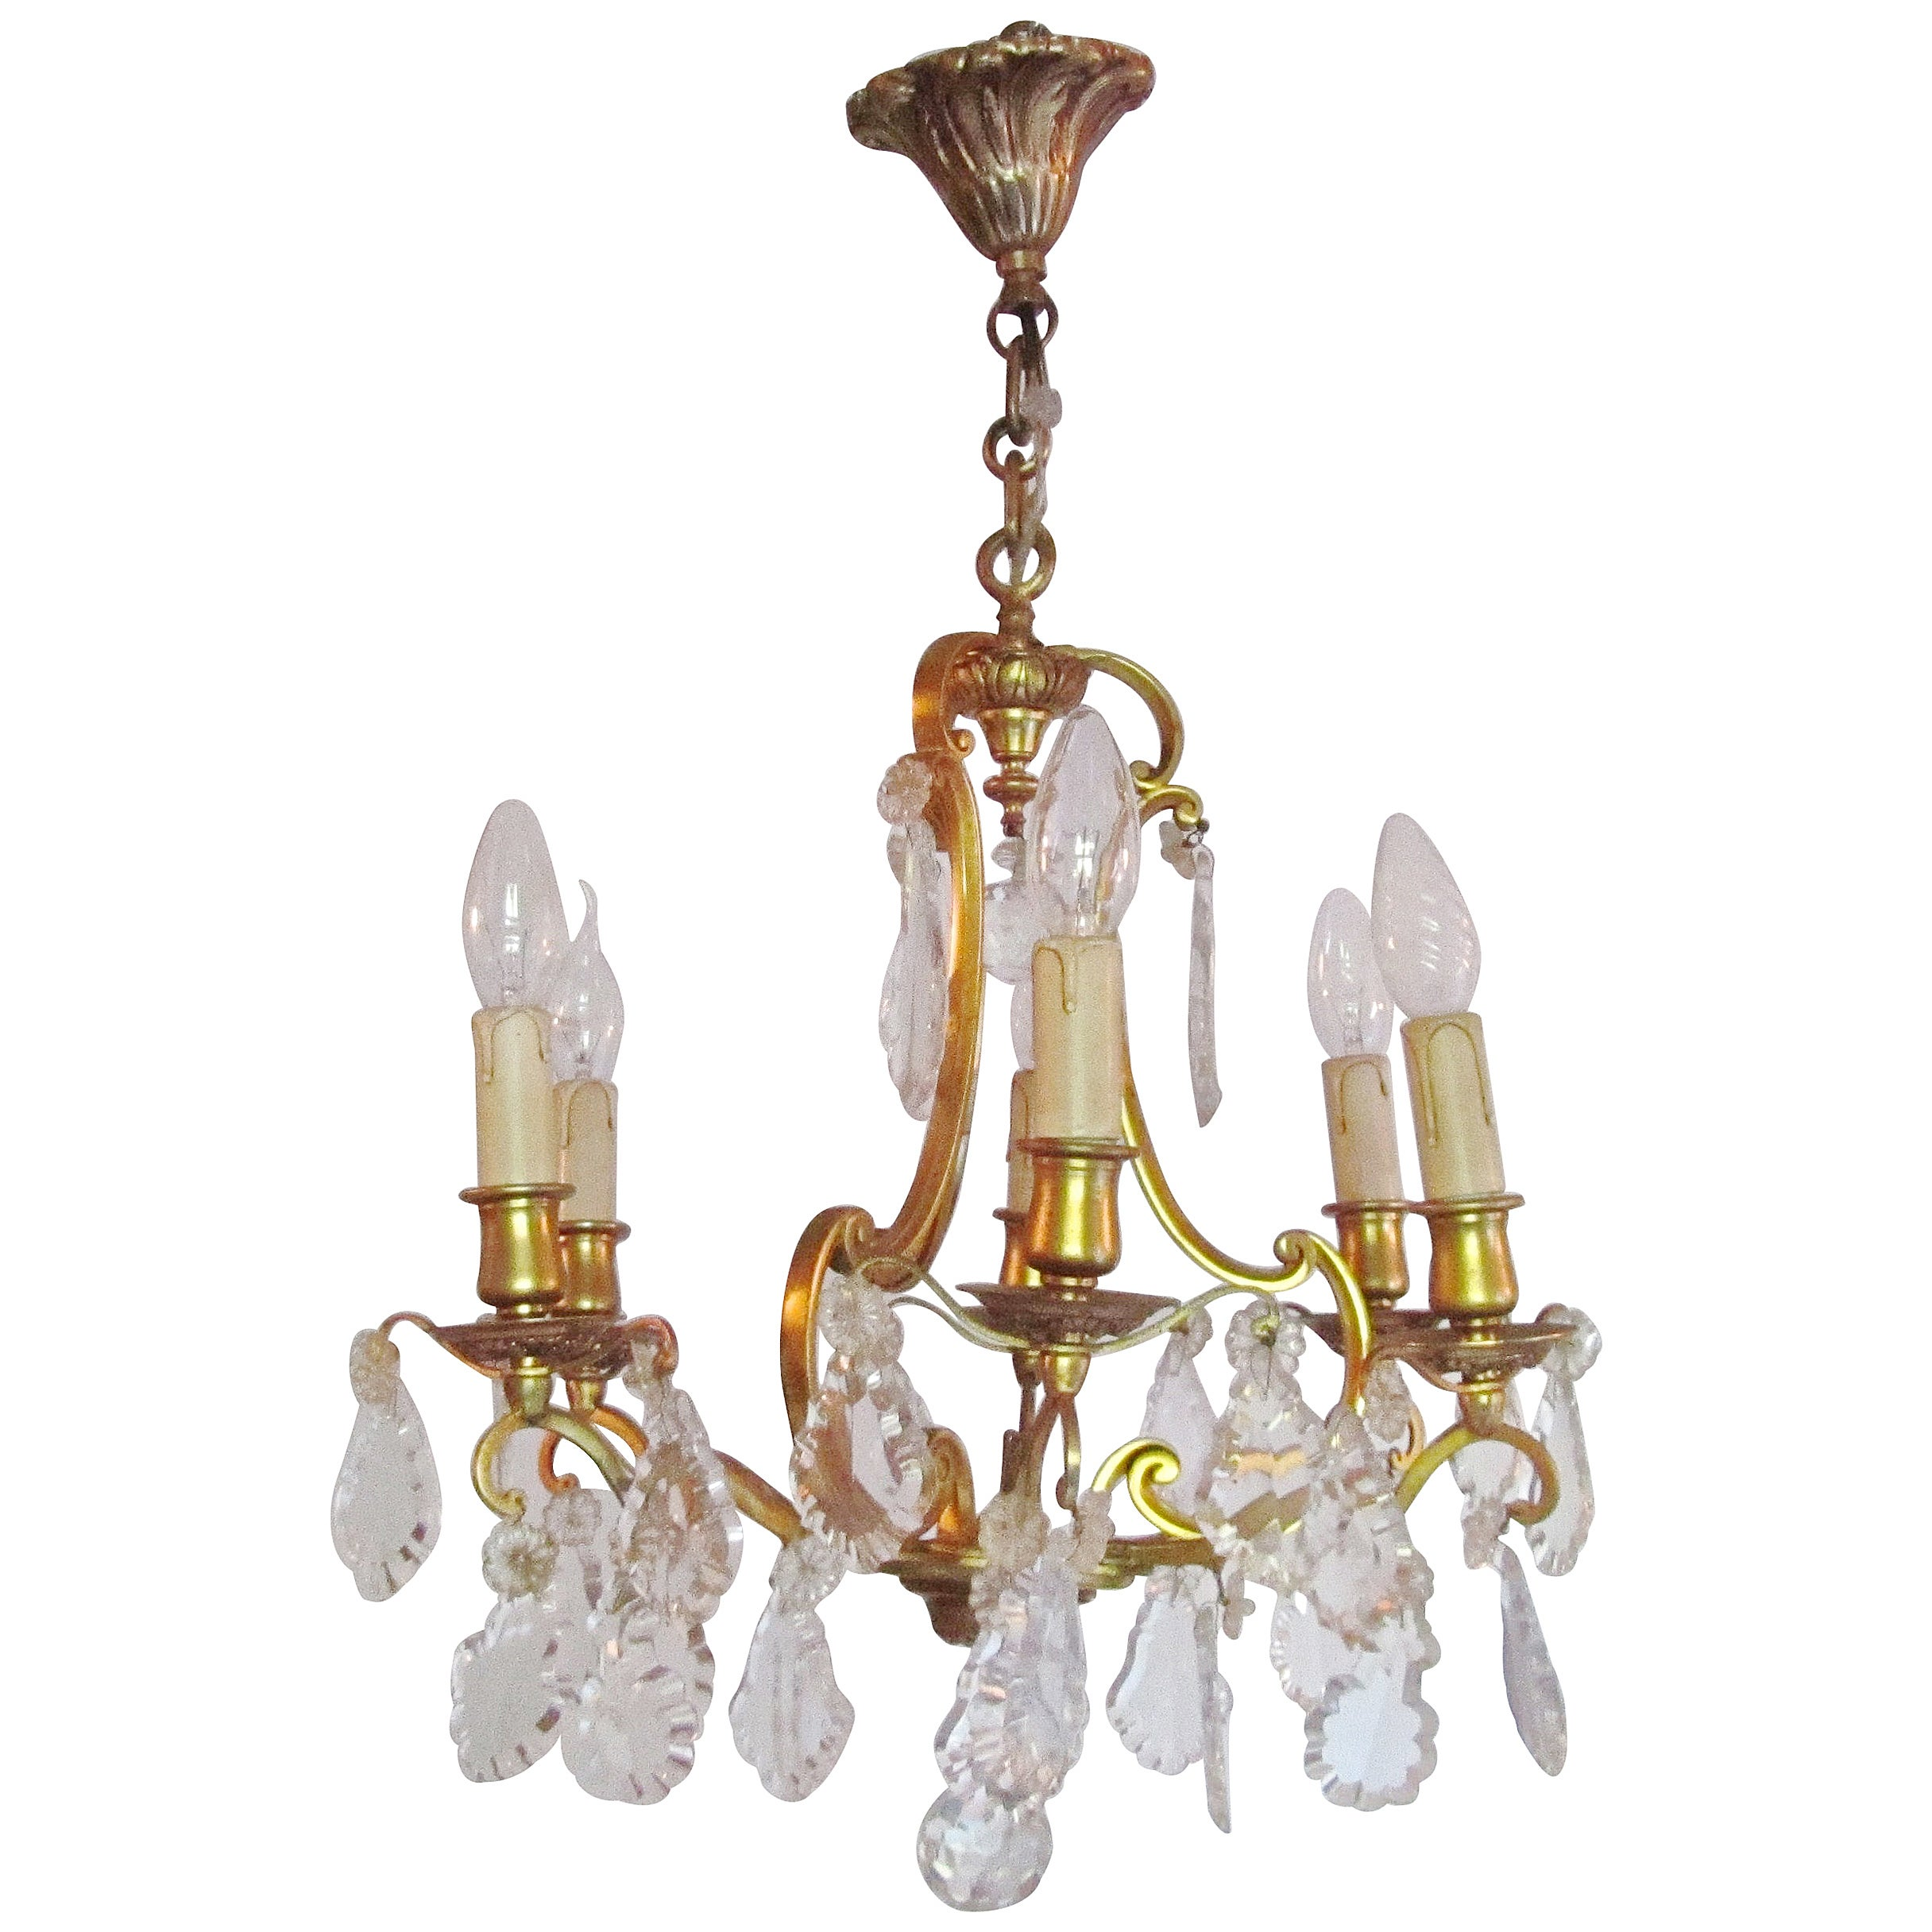 Charming French Cut Glass and Brass 6 Branch Chandelier